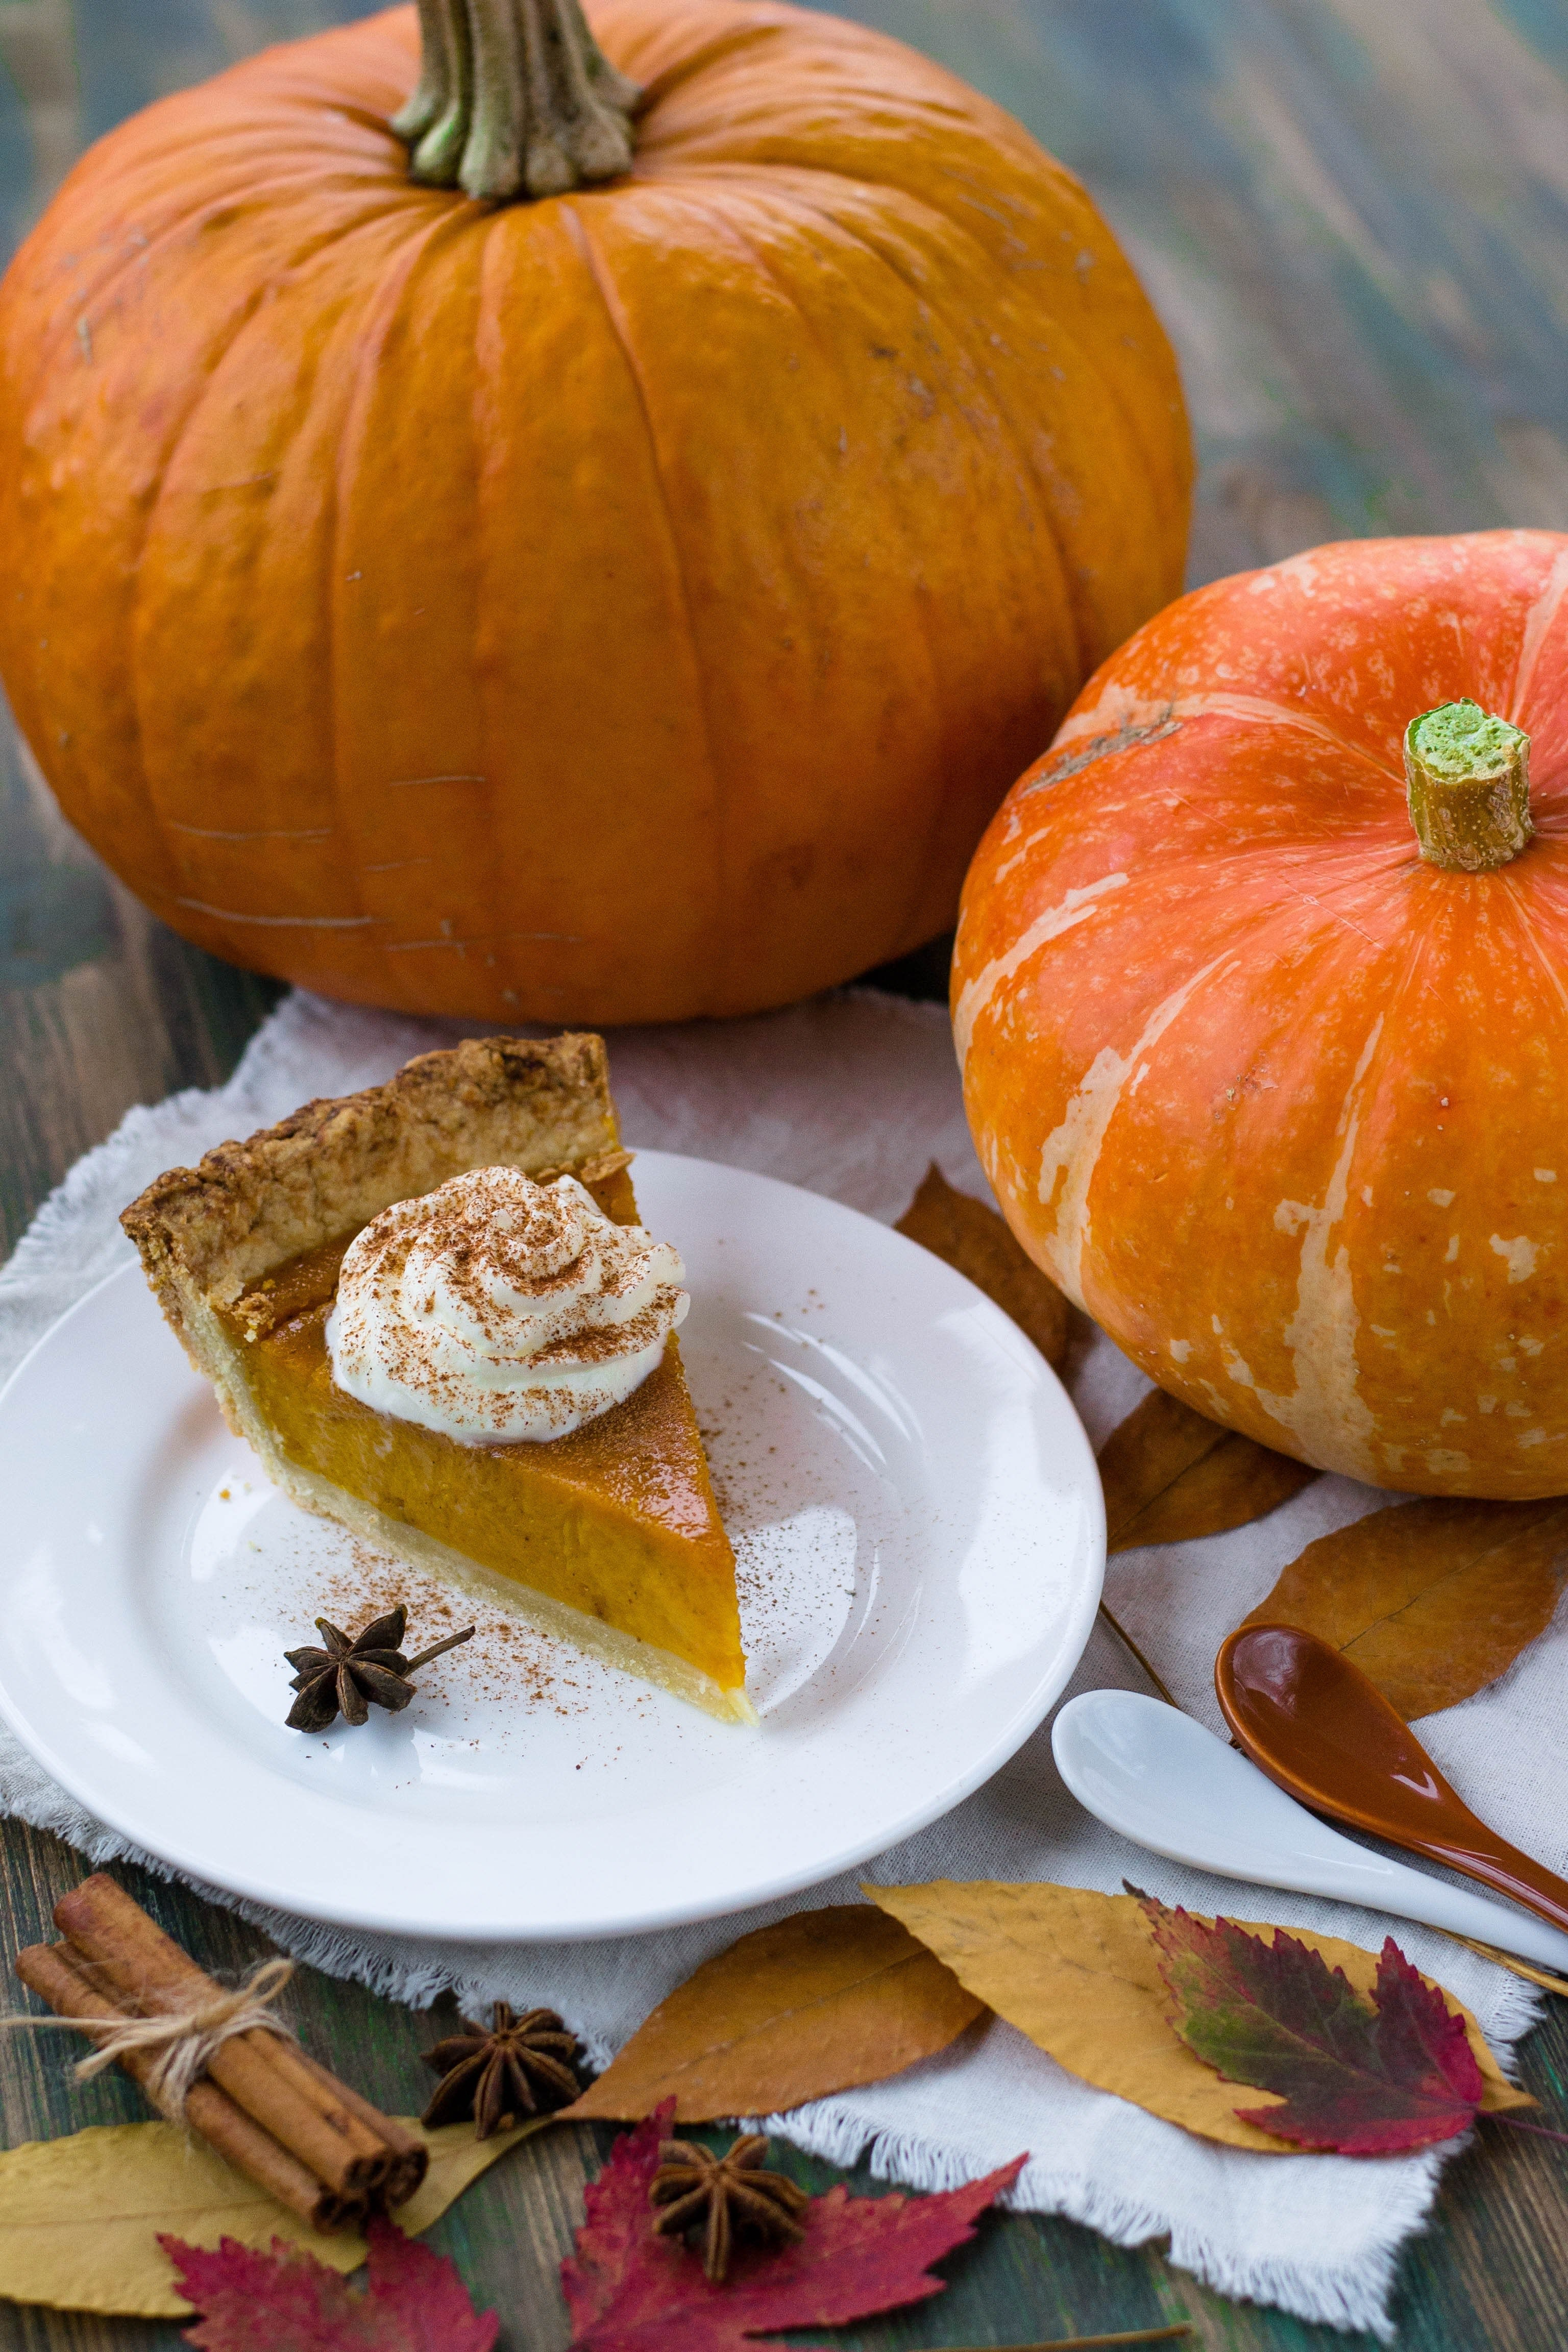 Italian pumpkin cheesecake